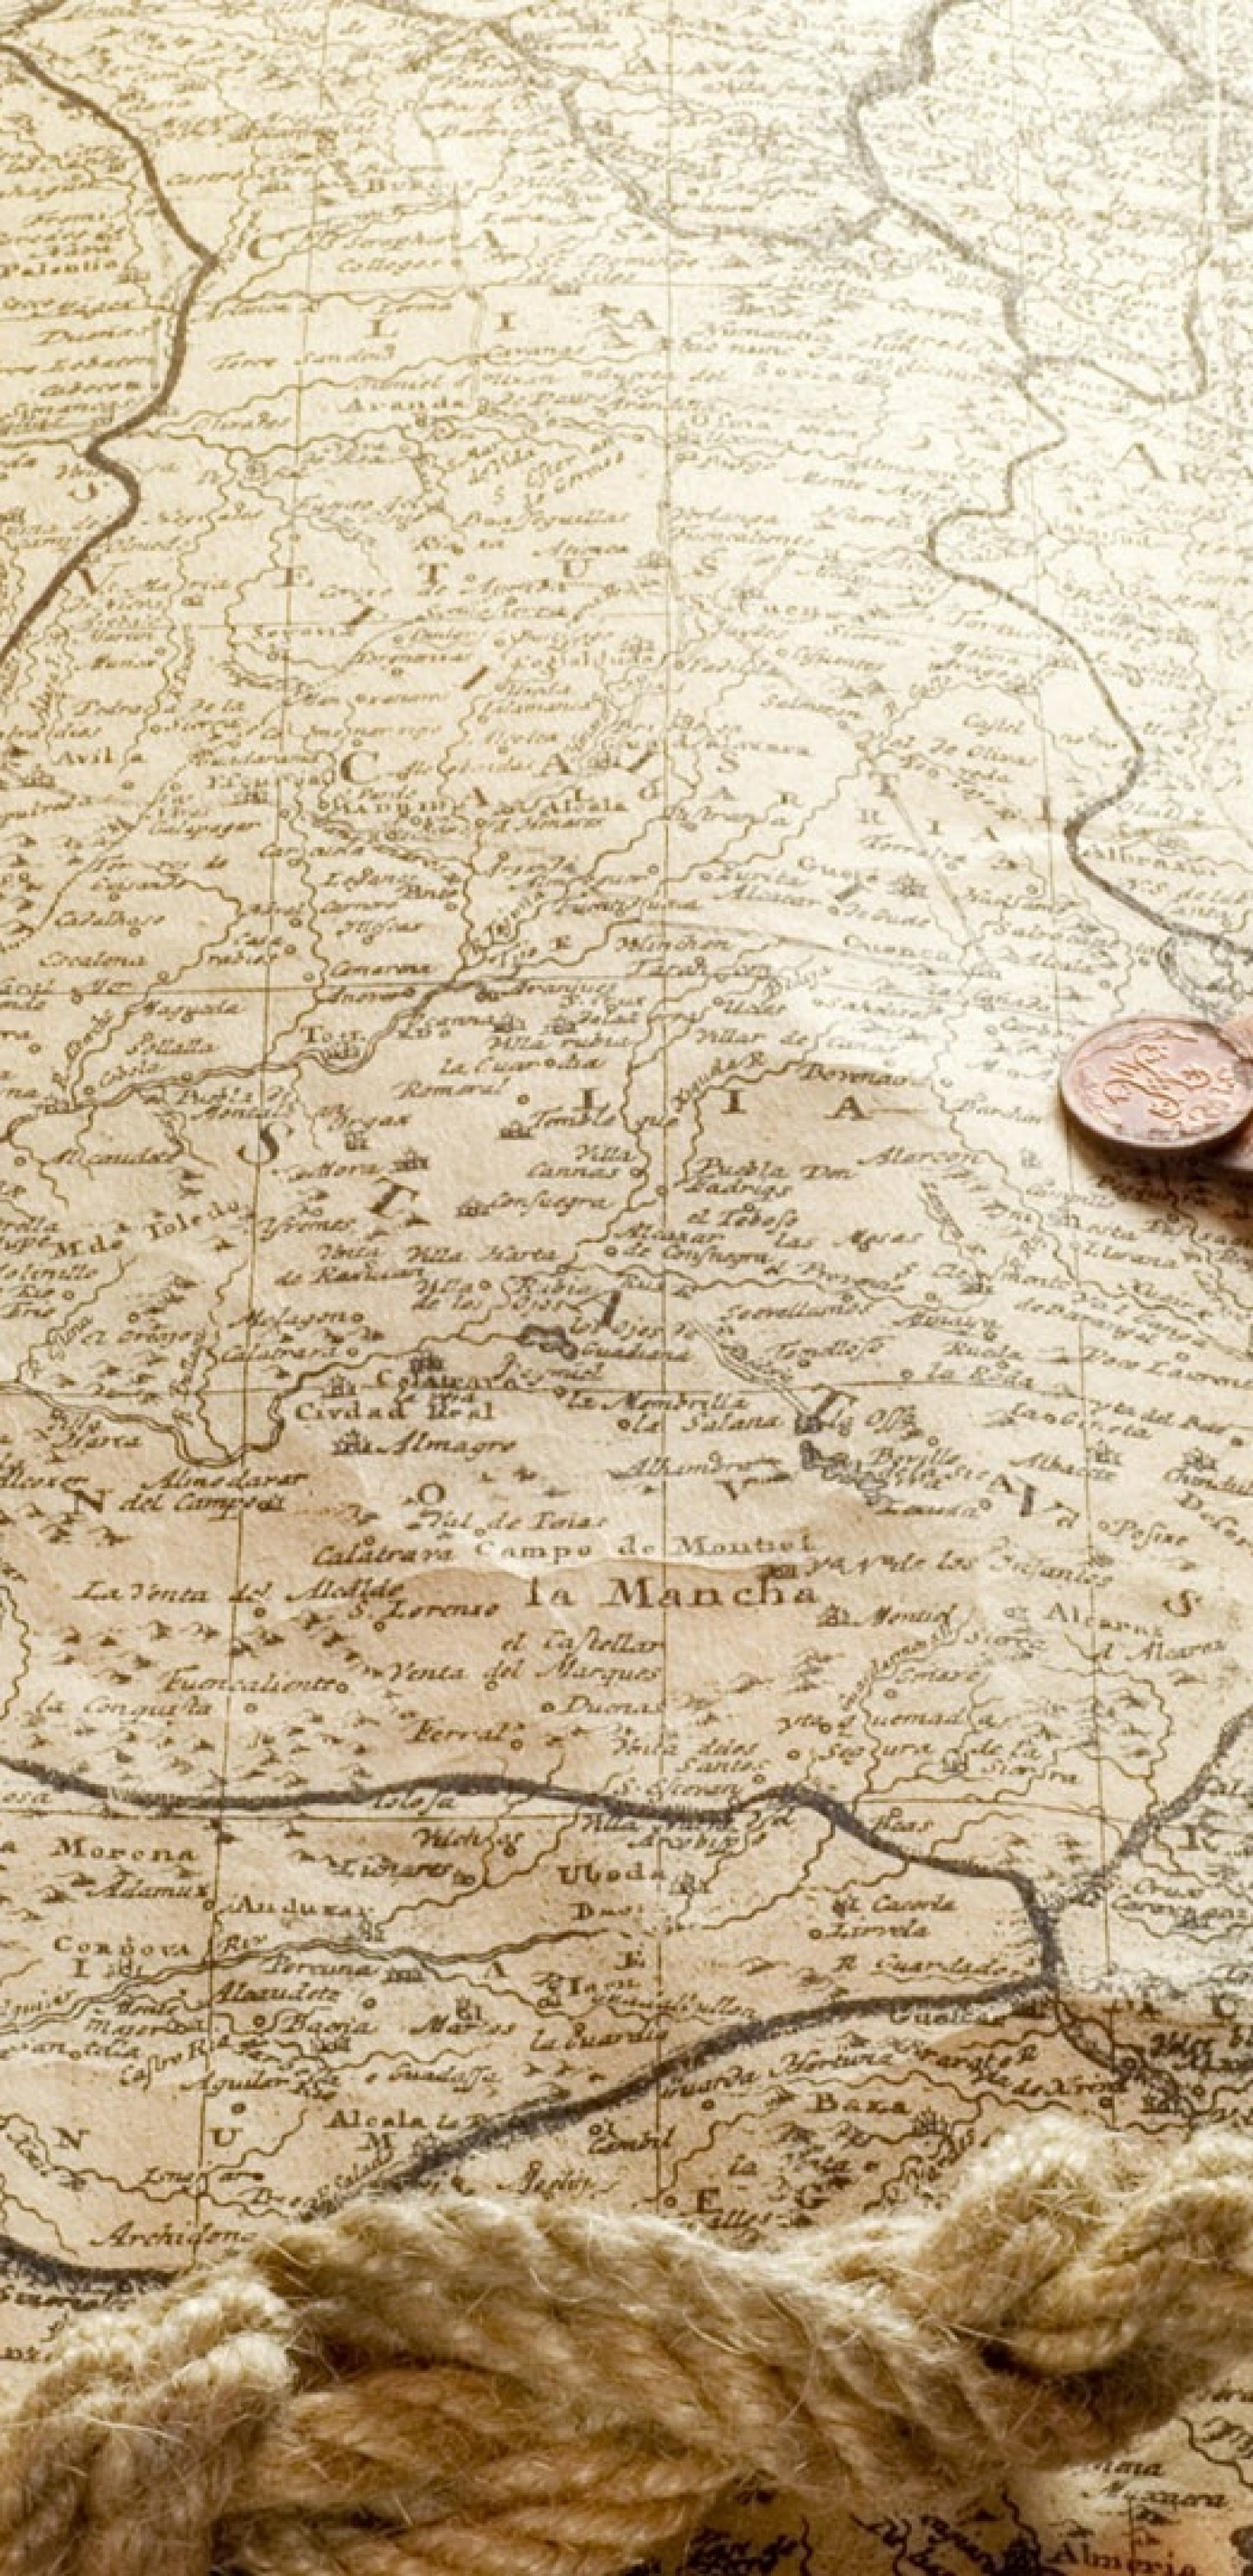 Res: 1440x2960, Old Map, Rope, Compass, Coins